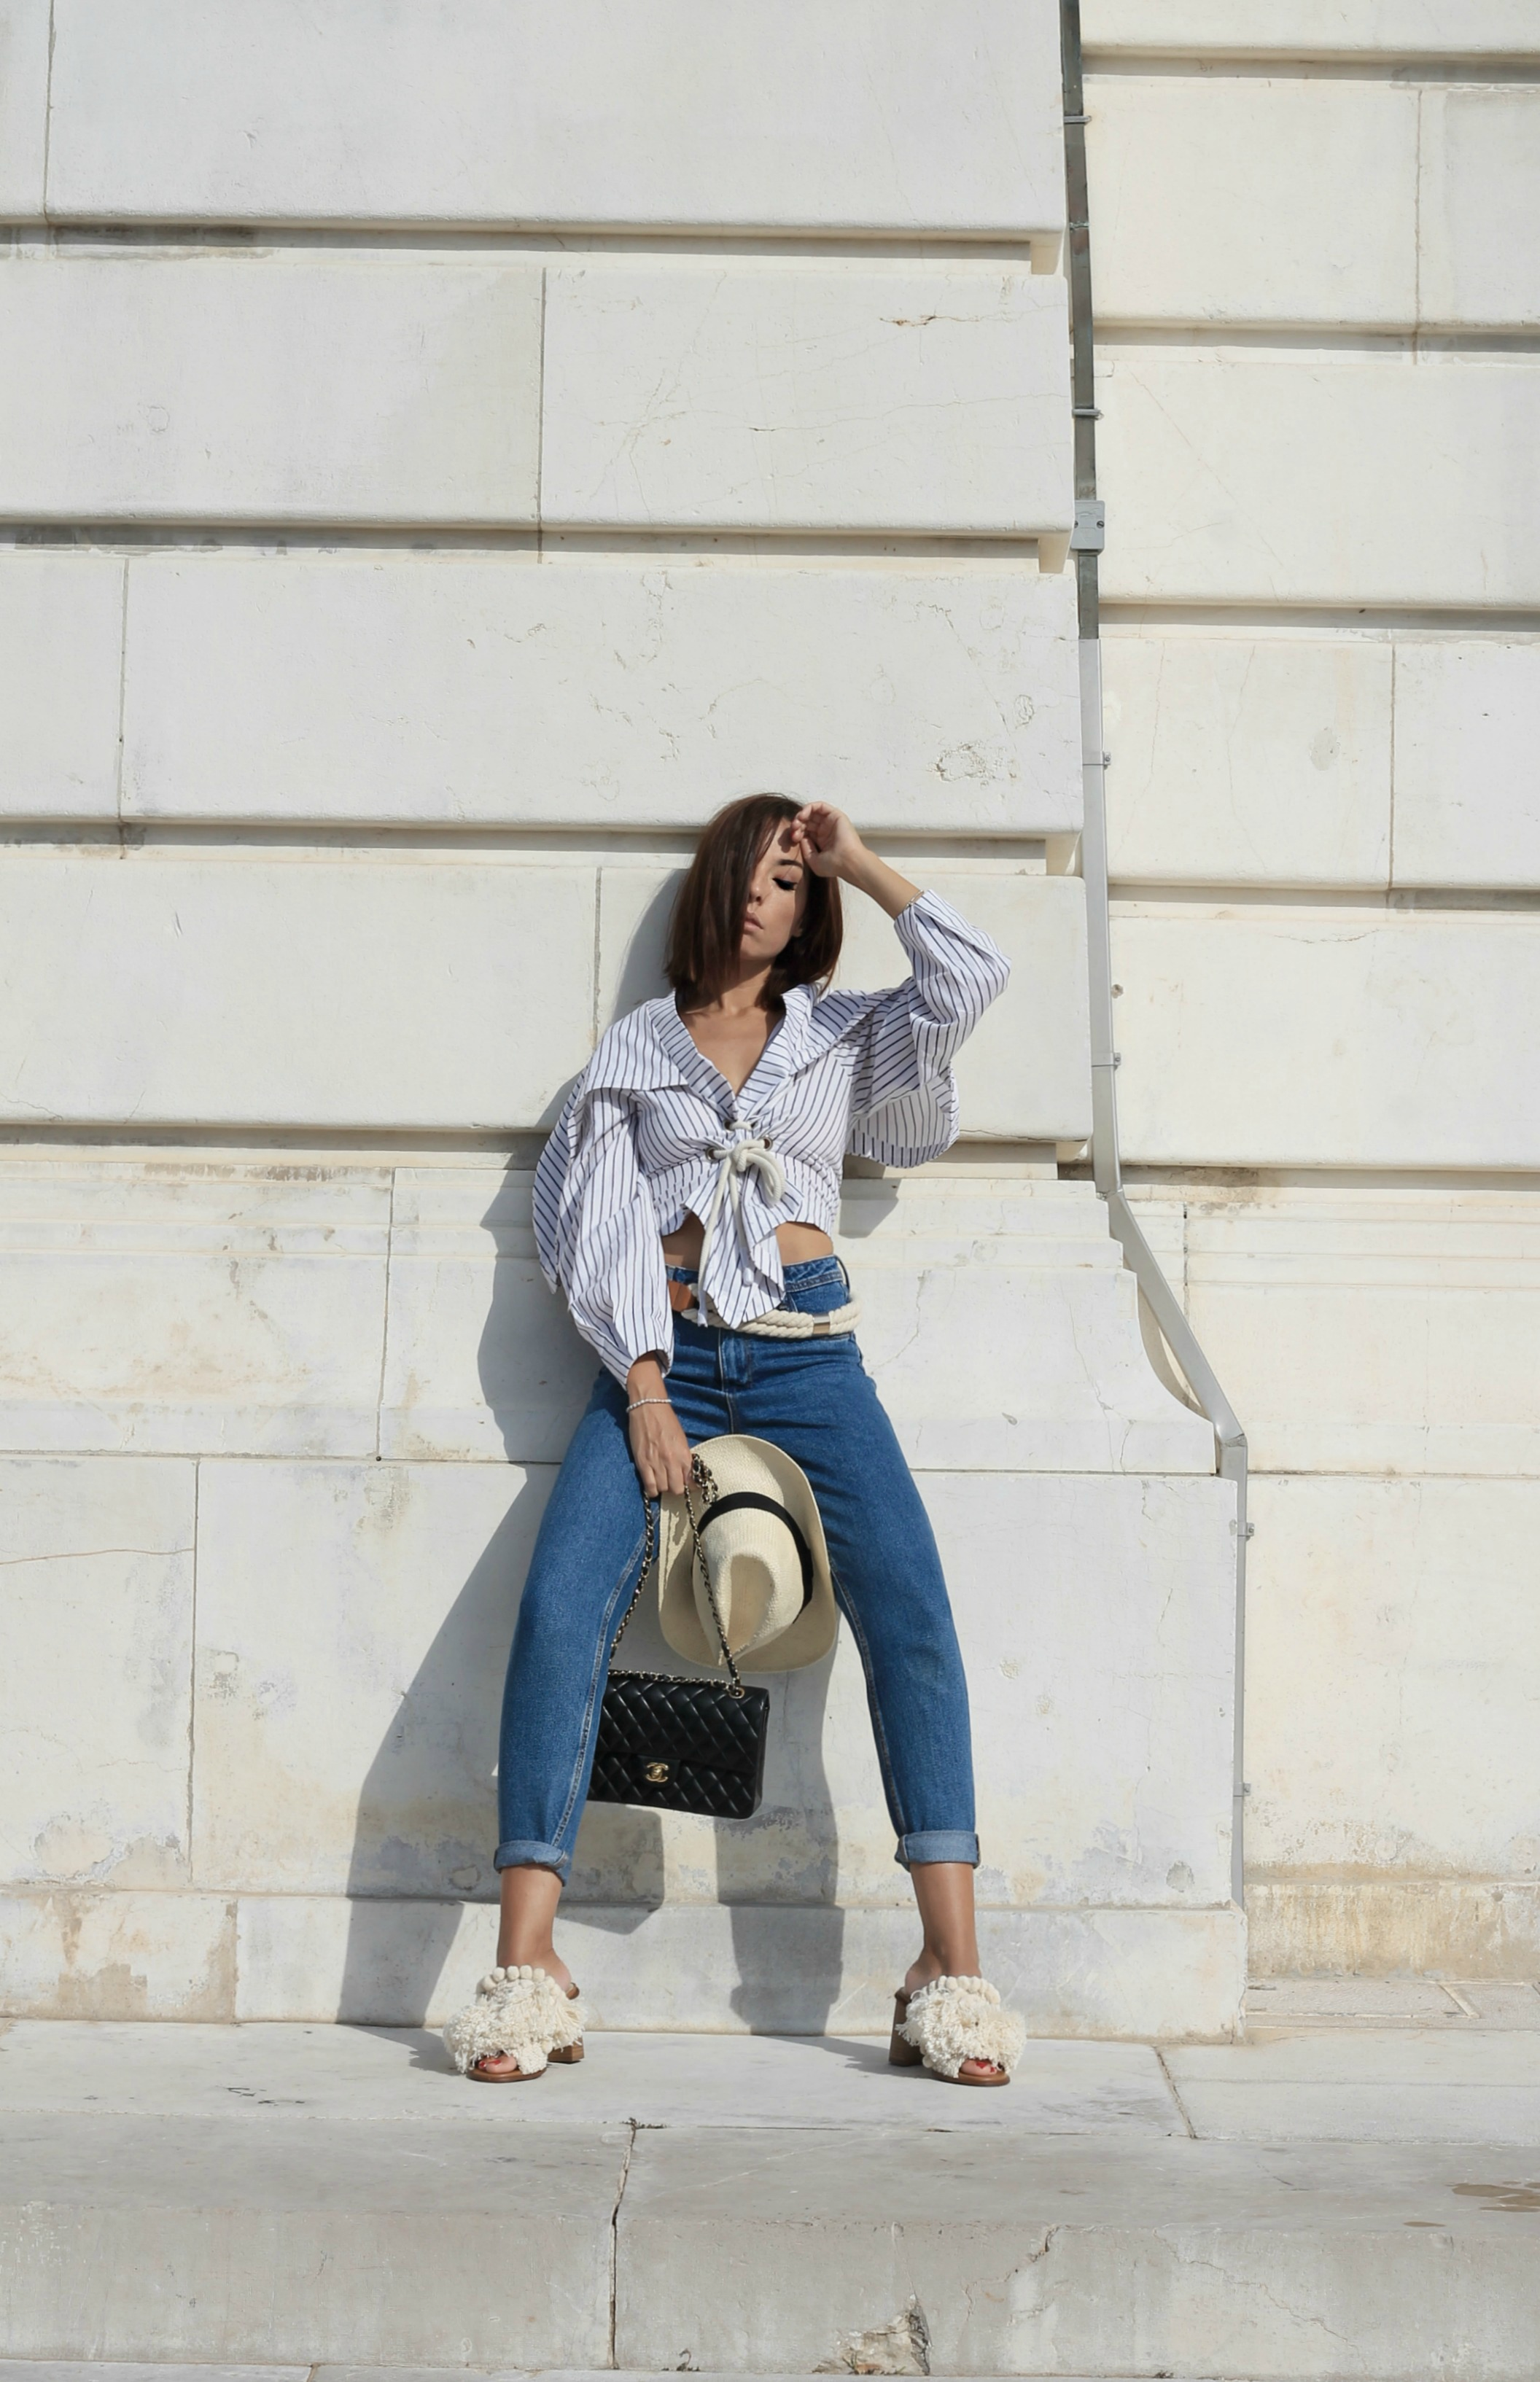 Amazon come funziona, amazon prime, amazon echo look come funziona, amazon wardrobe come funziona, casual chic outfit estate 2017, elisa bellino, theladycracy.it, asos white camicia, sandali zara 2017, chanel 2.55 originale, mom jeans zara 2017, blogger moda 2017, blog moda italiani 2017, fashion blogger italiane 2017, fashion blogger famose 2017, fashion blogger milano 2017, blogger moda più seguite 2017,